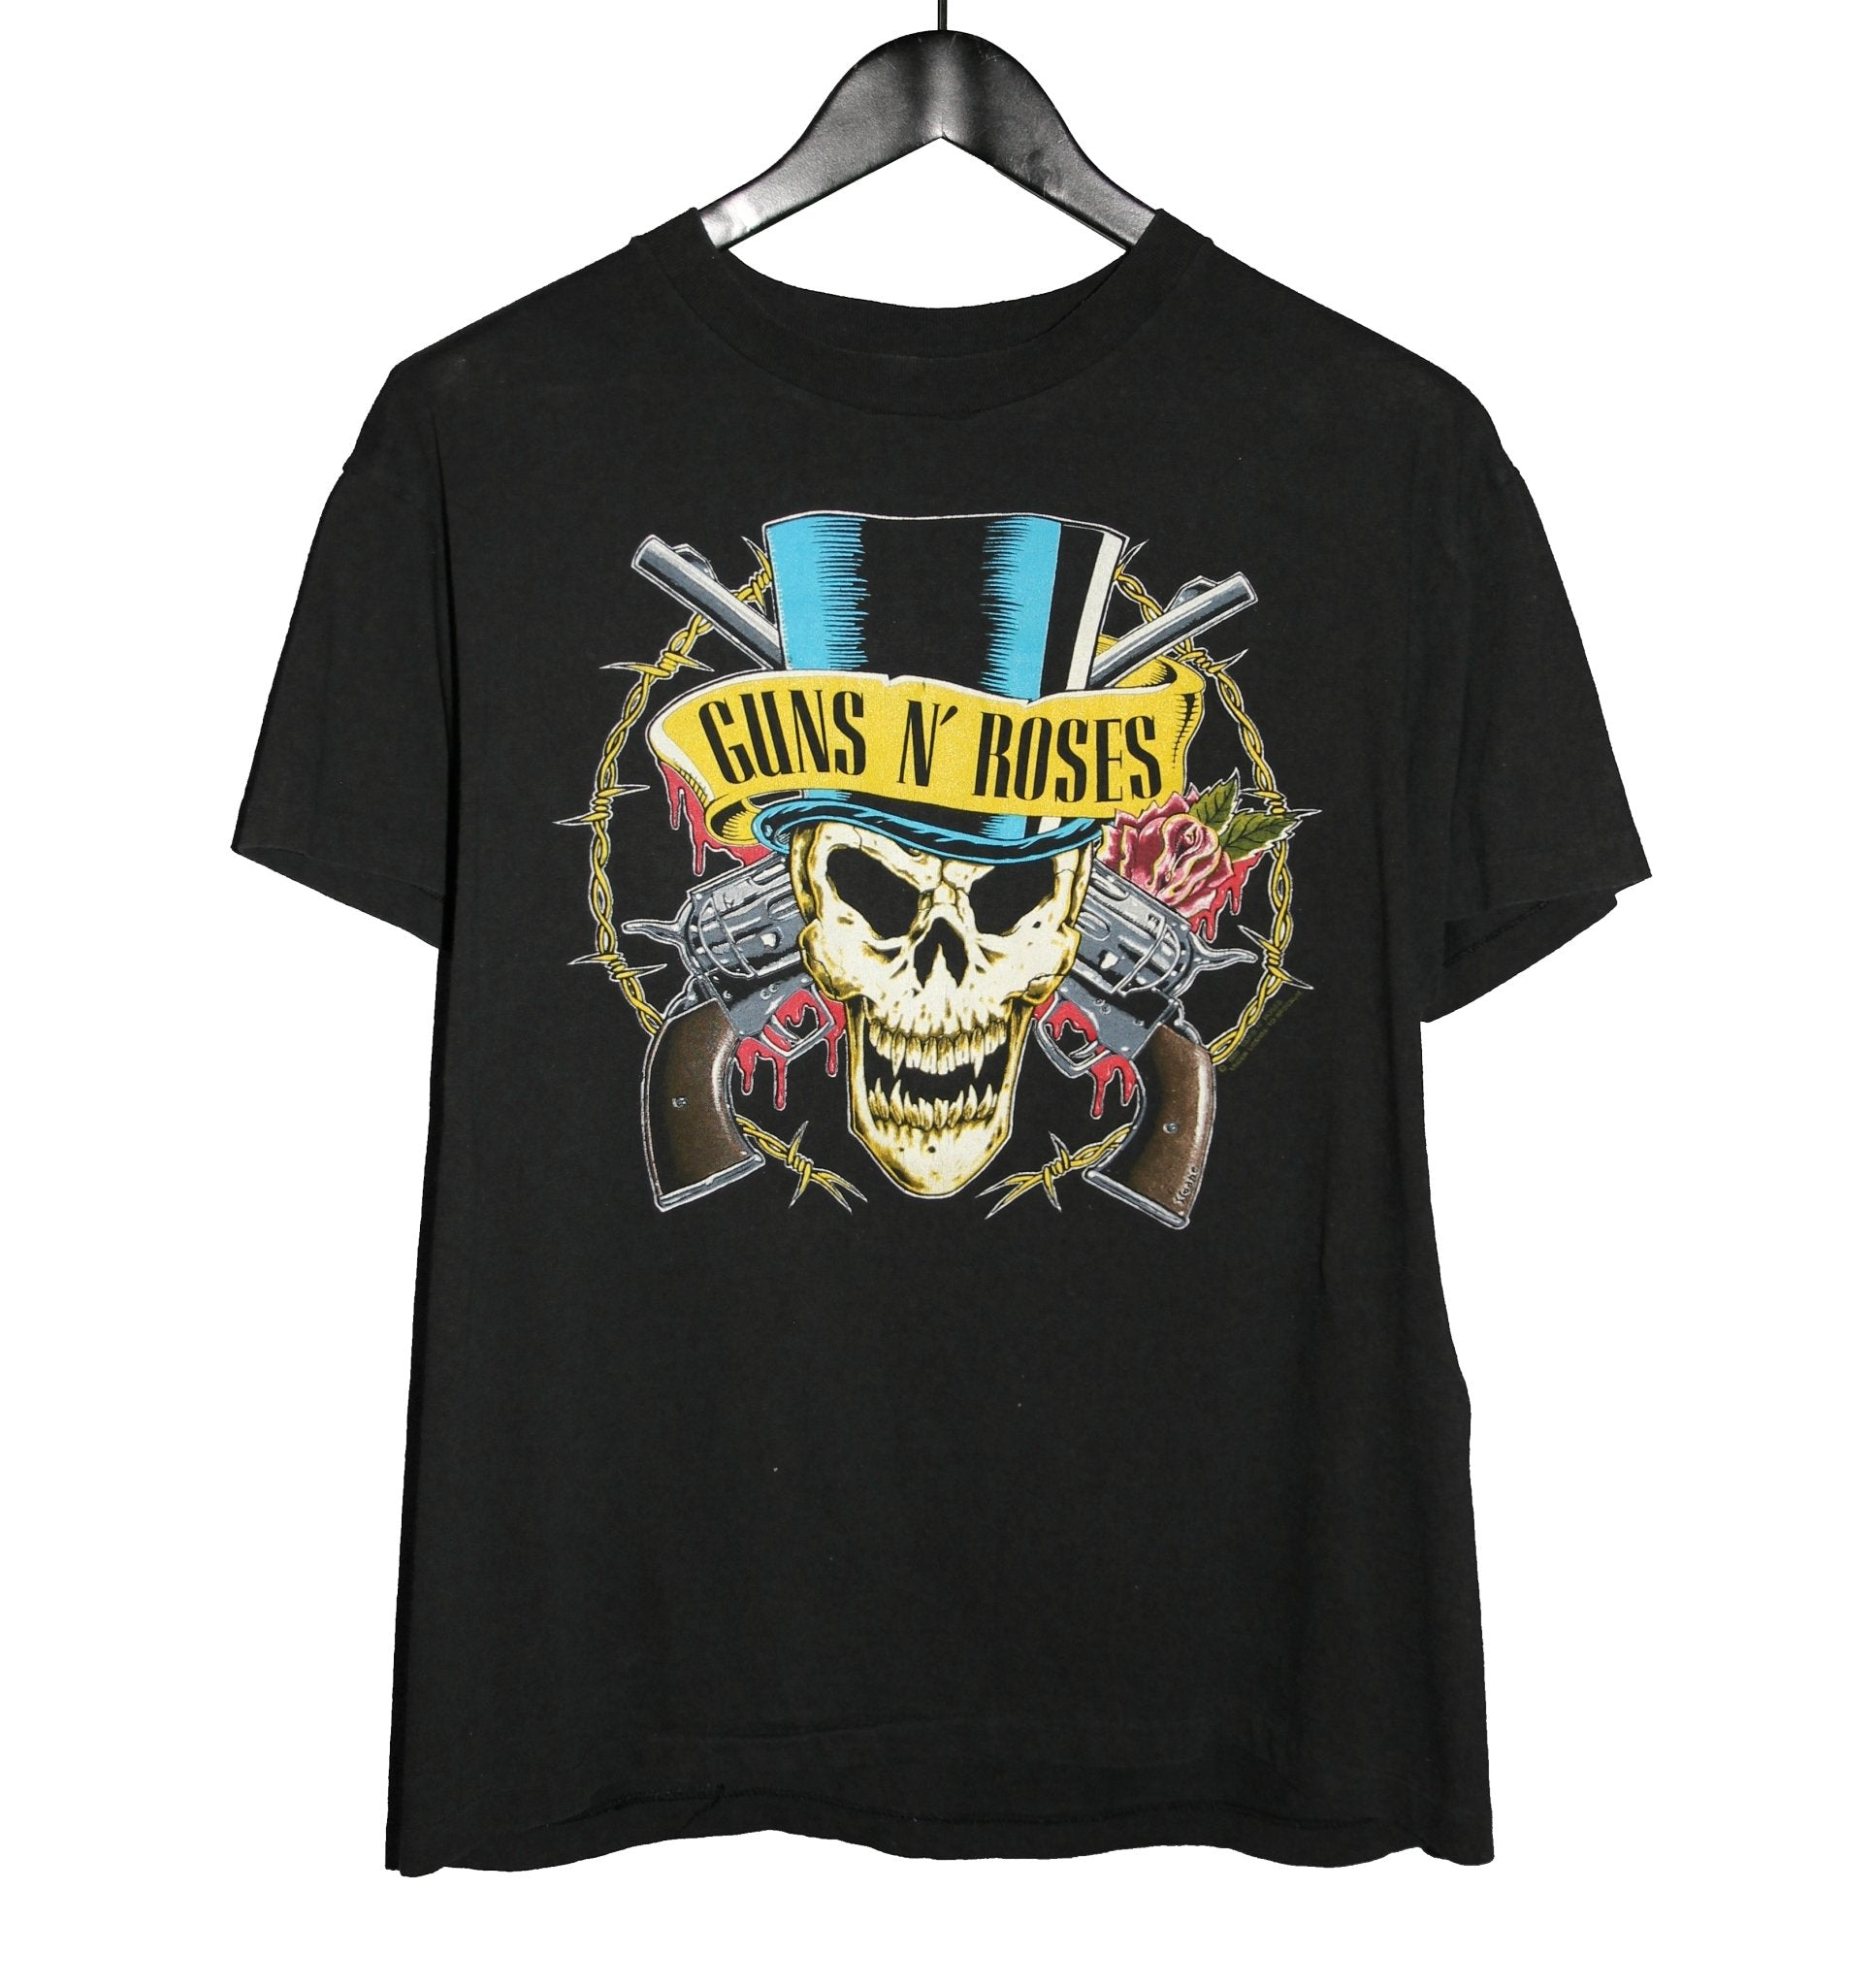 Guns N' Roses 1991/92 Use Your Illusion Tour Shirt - Faded AU